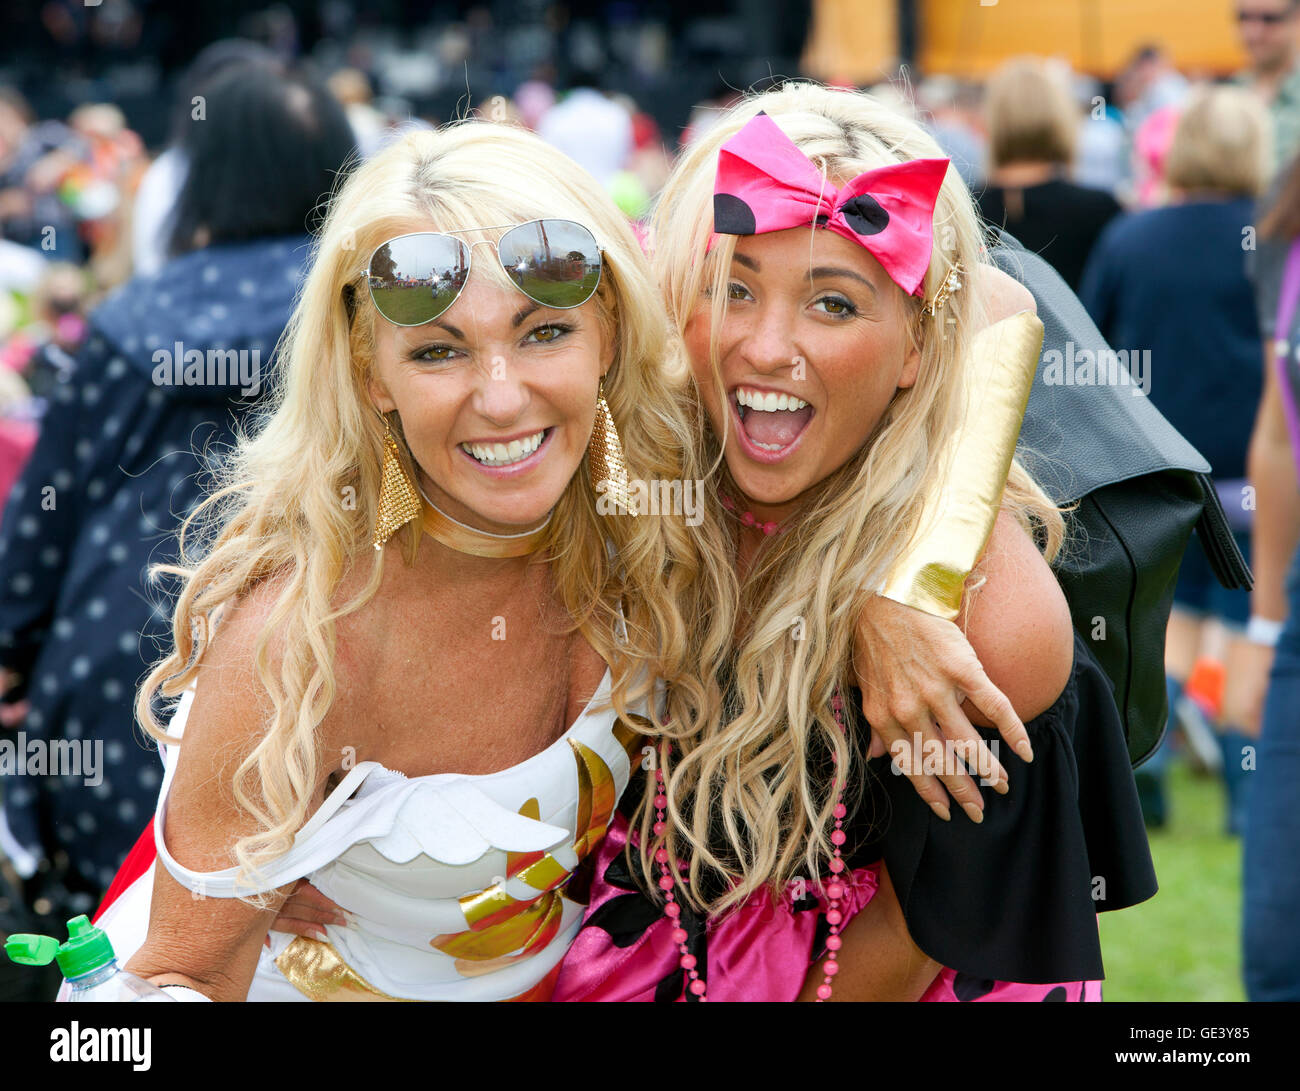 Perth, Scotland, UK. 23rd July, 2016. Revellers at The Rewind 80s festival Scone Palace ,Perth,Scotland,UK Credit: - Stock Image